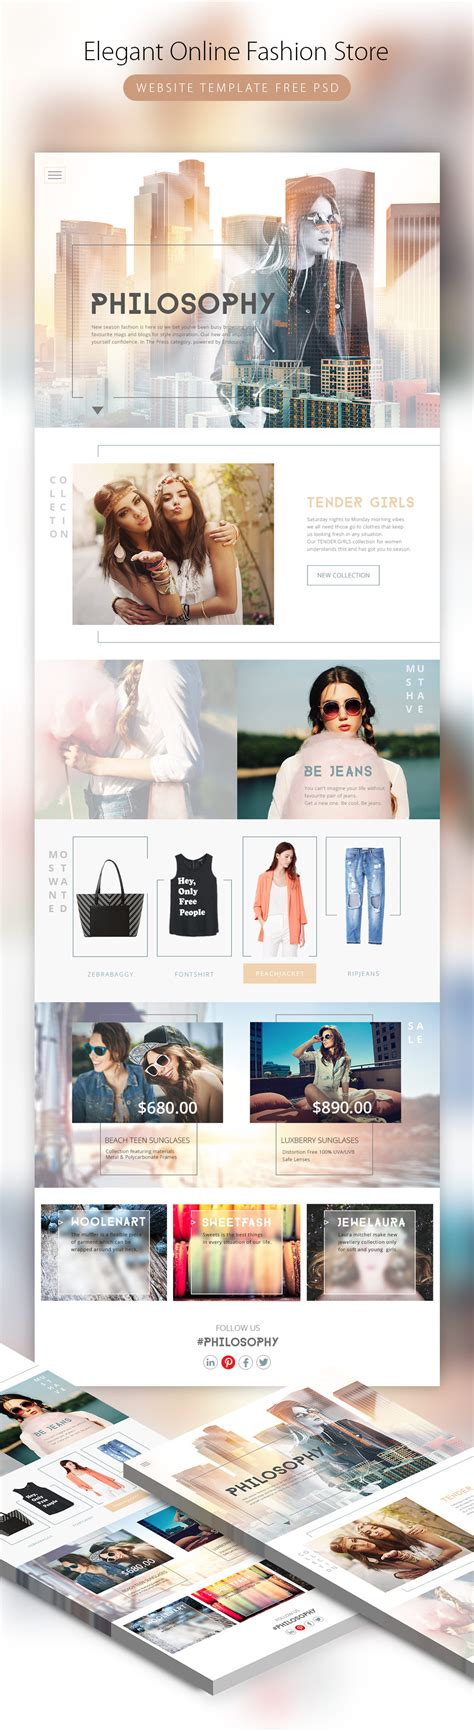 Elegant Online Fashion Store Website Template Psd Download Download Psd Clothing Brand Website Template